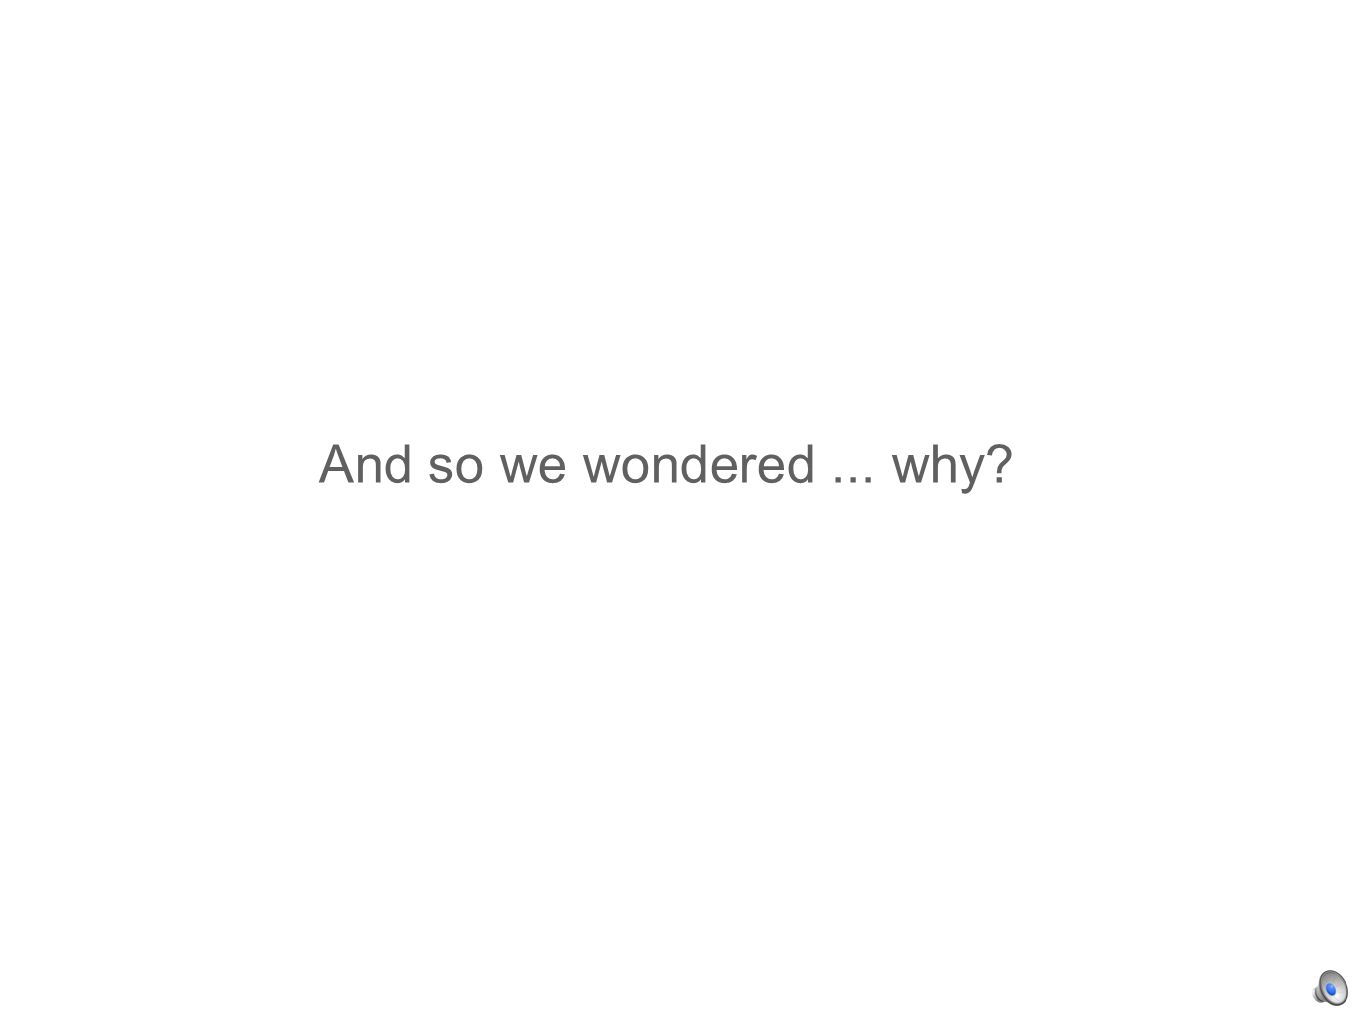 And so we wondered... why